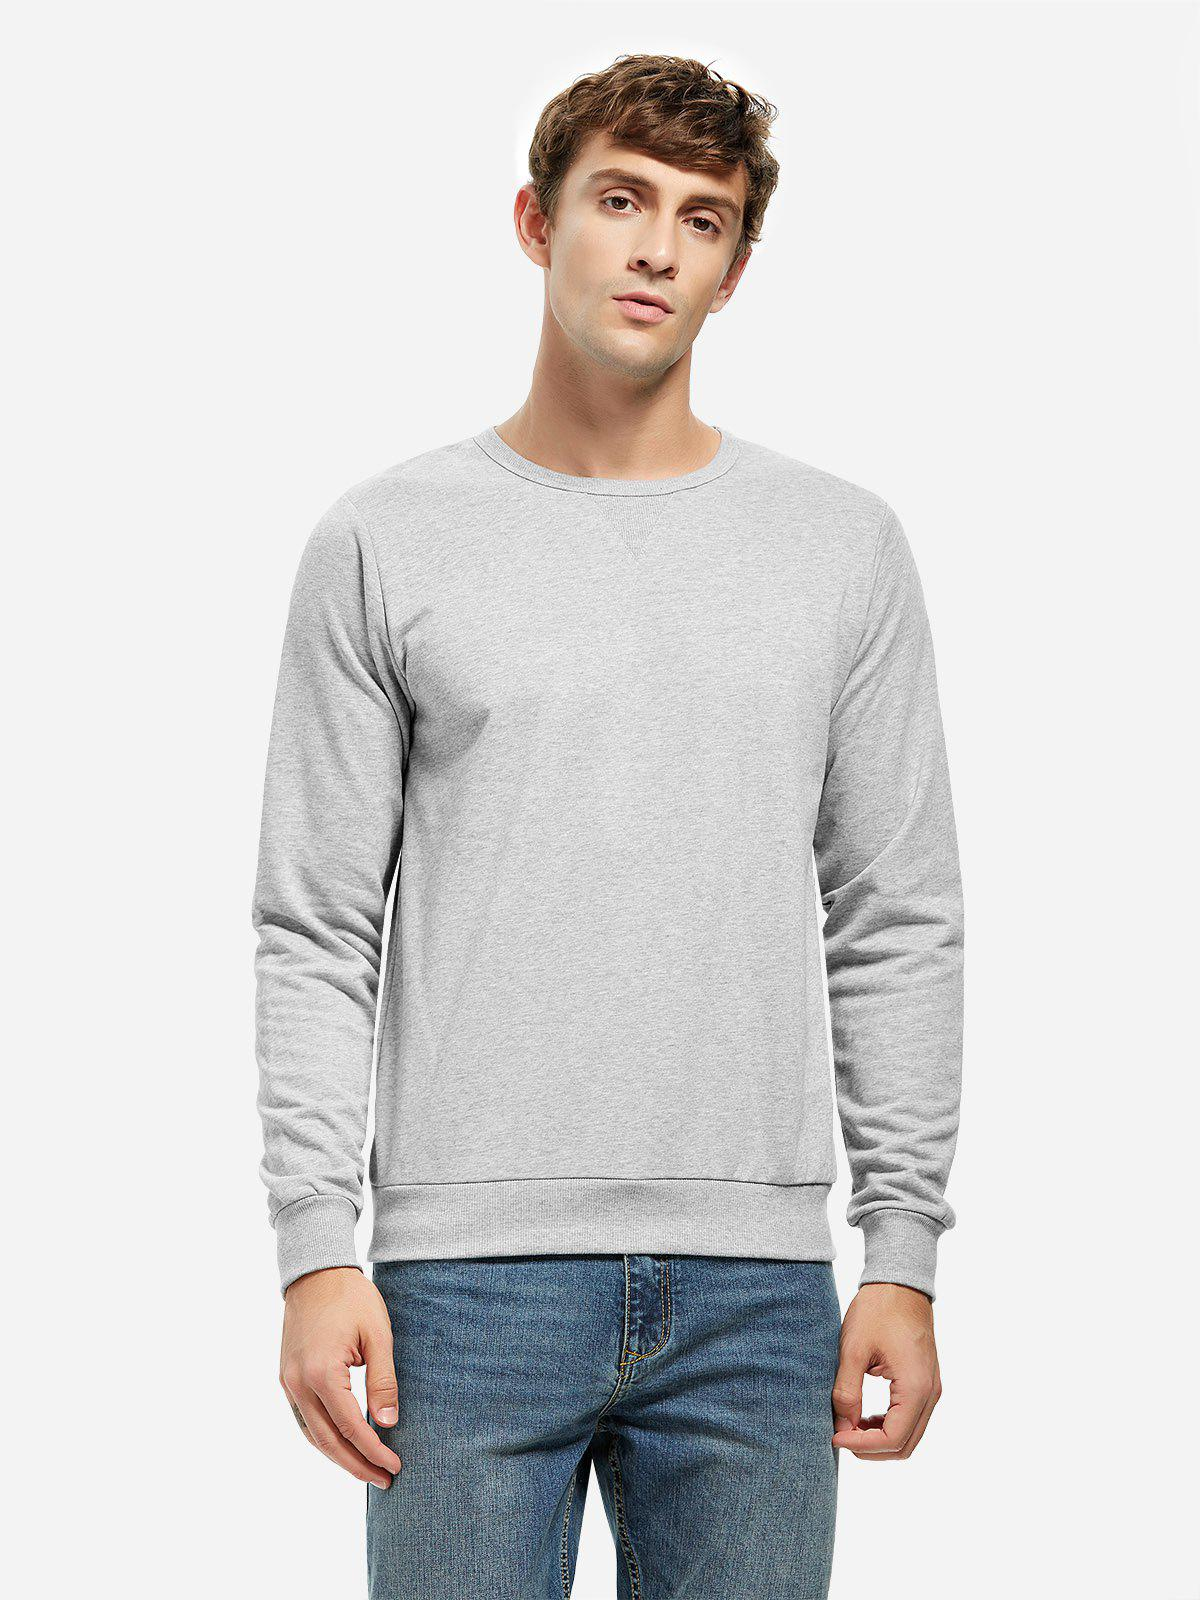 Sweat-Shirt à Col Rond - Gris Clair XL